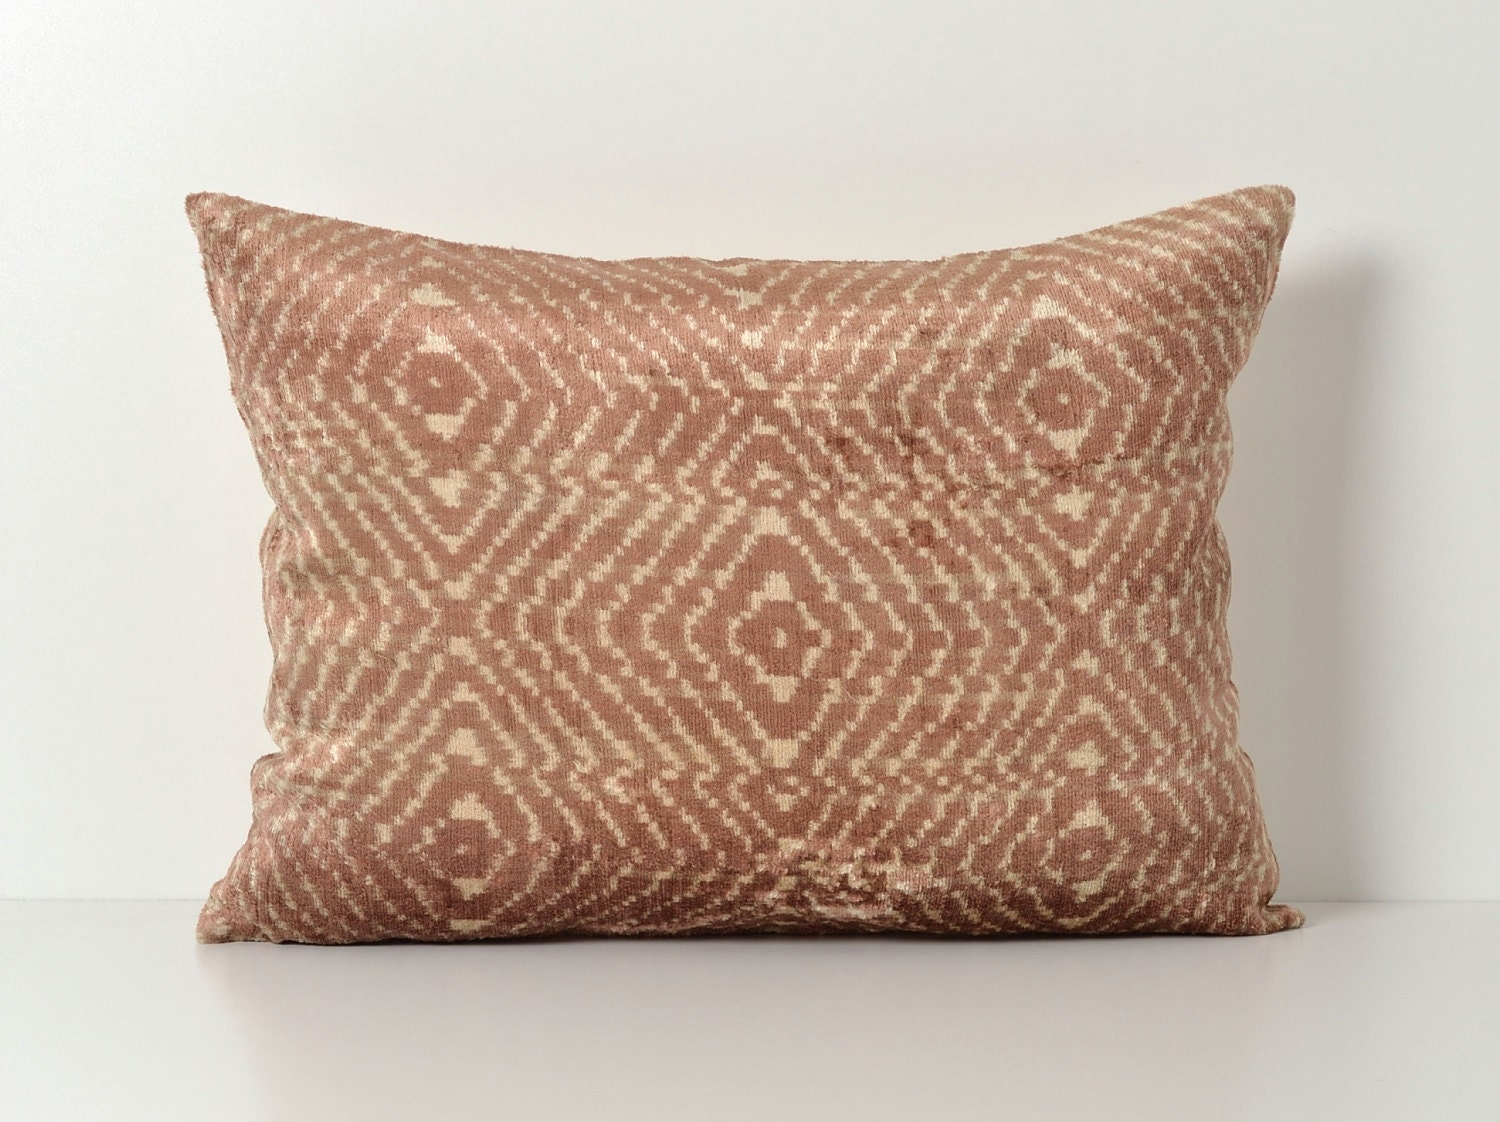 Brown Decorative Throw Pillows : Brown Ikat Pillow Ikat Pillows Decorative Throw Pillow Couch